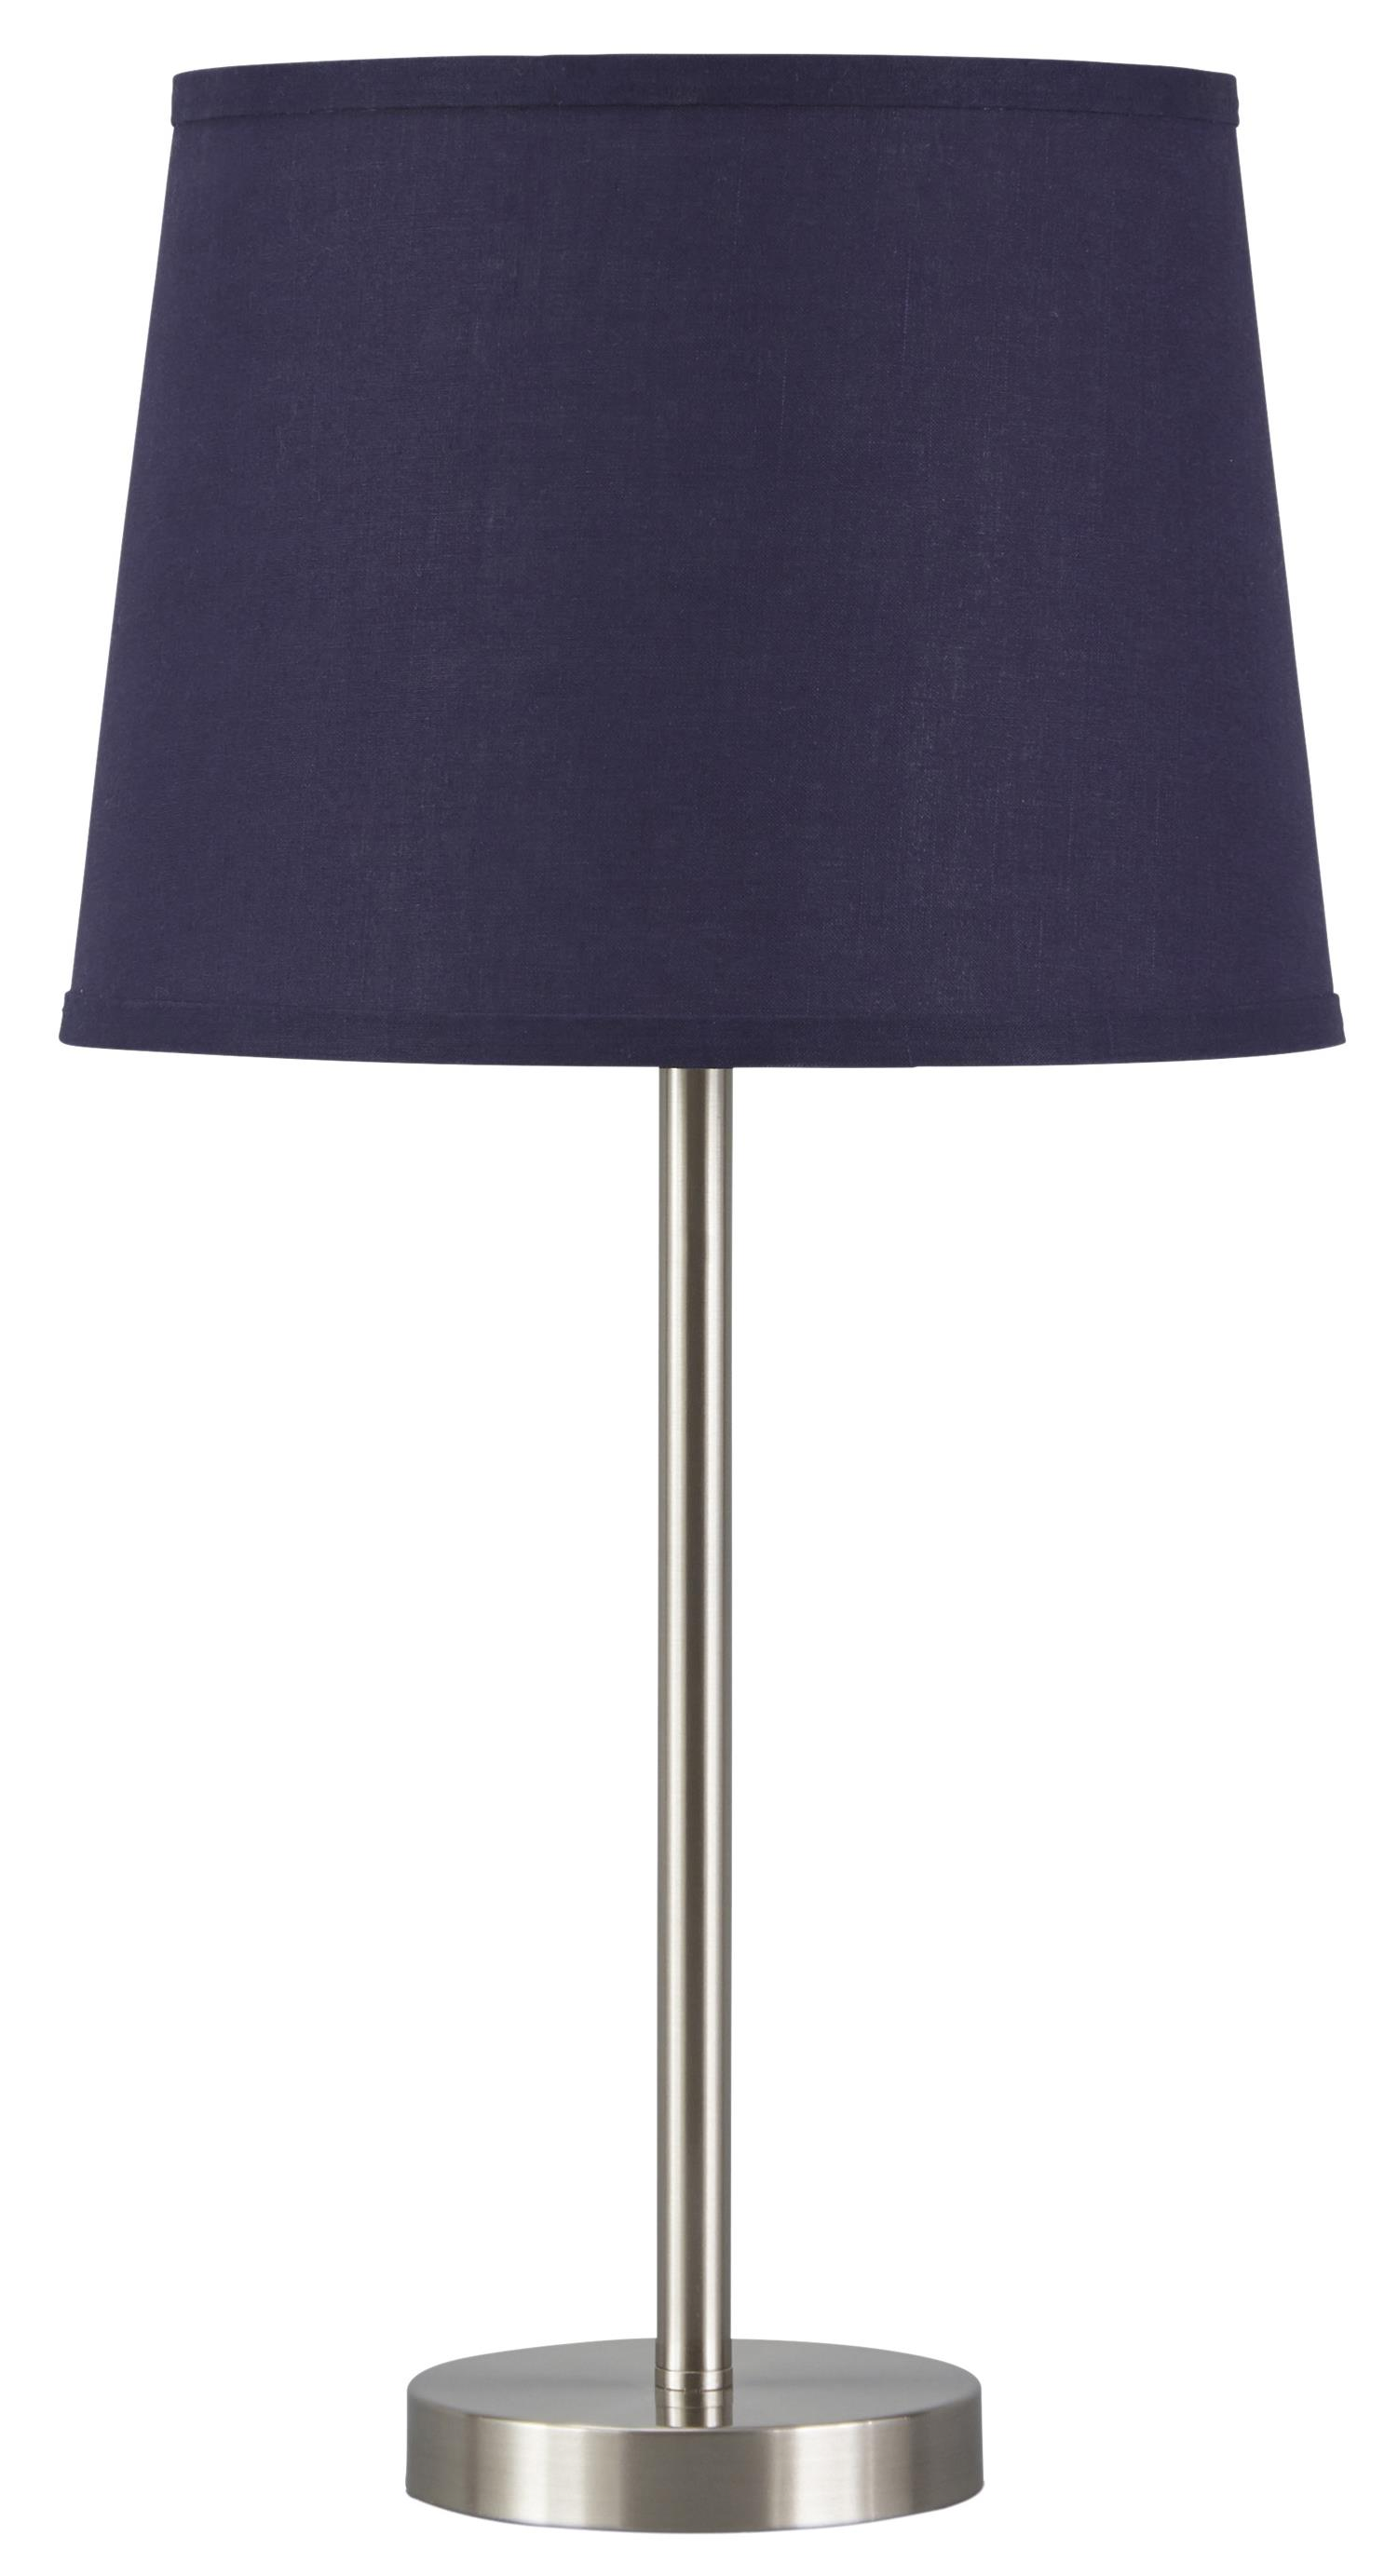 Signature Design by Ashley Lamps - Contemporary Shonie Metal Table Lamp - Item Number: L857514